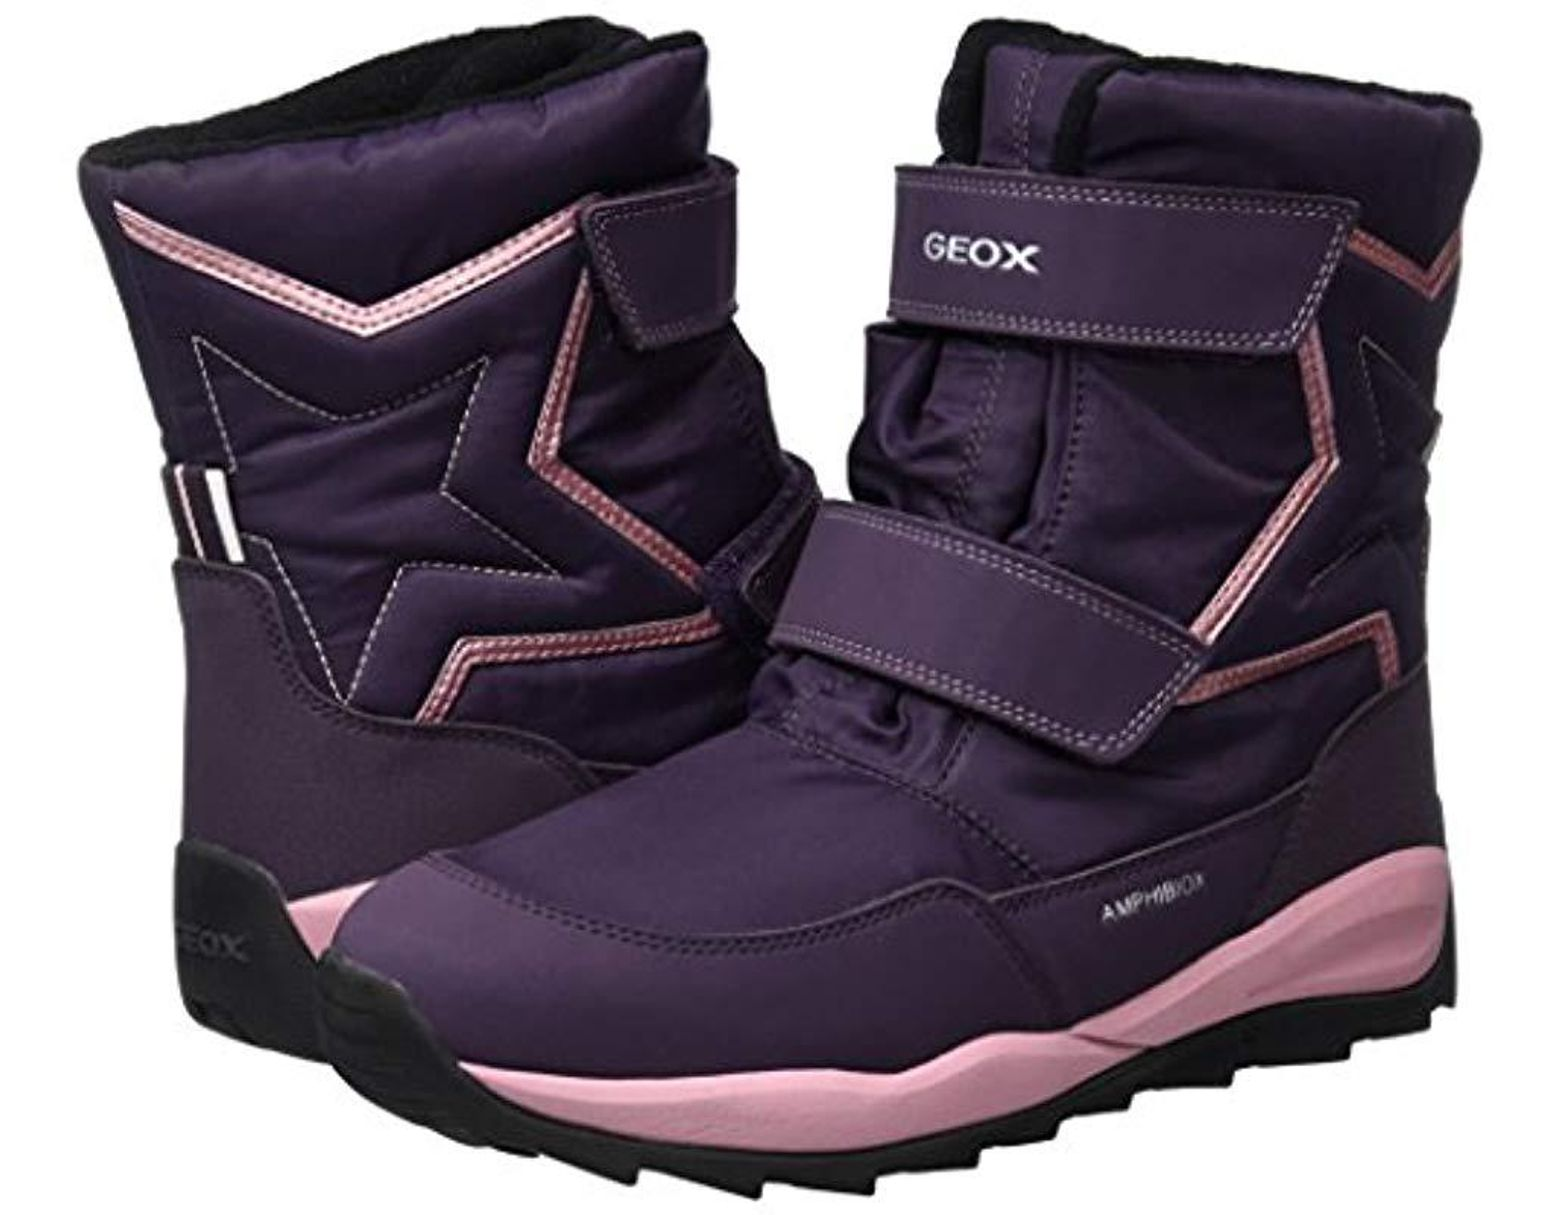 b0b8e61b8c6 Geox Unisex Adults' J Orizont B Girl Abx A Snow Boots in Purple for Men -  Lyst